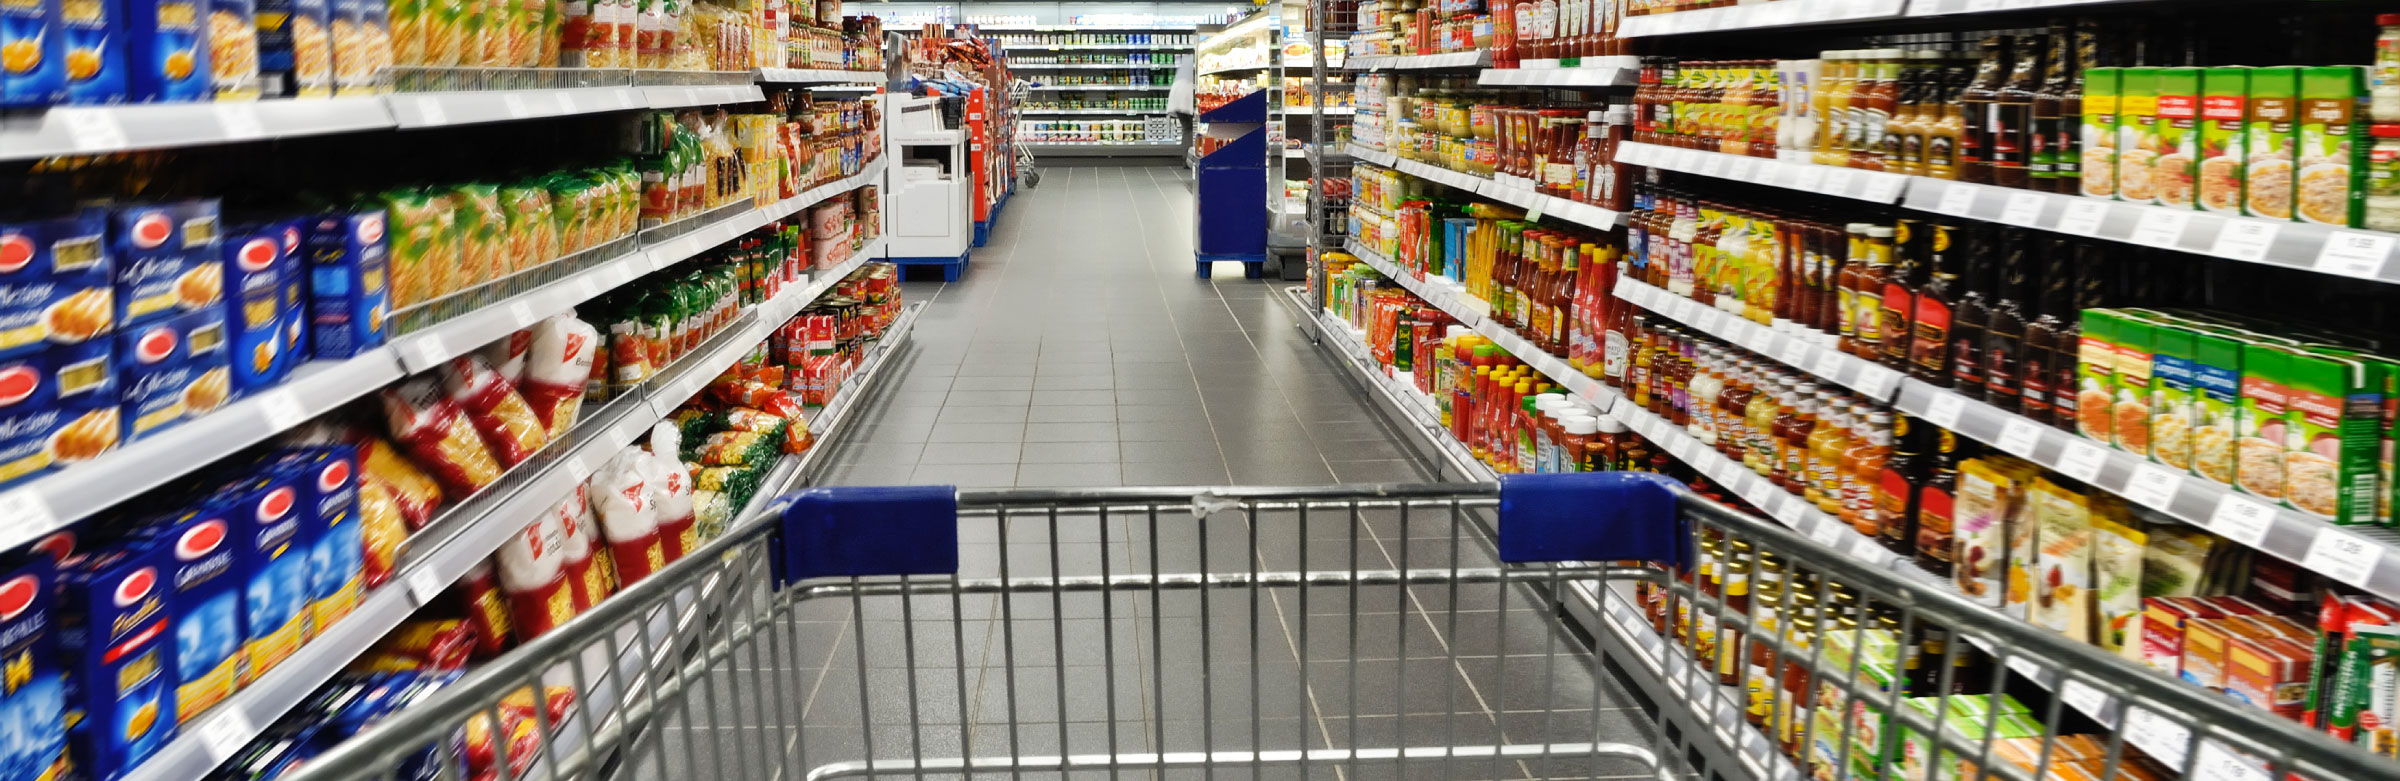 empty cart, grocery store aisle